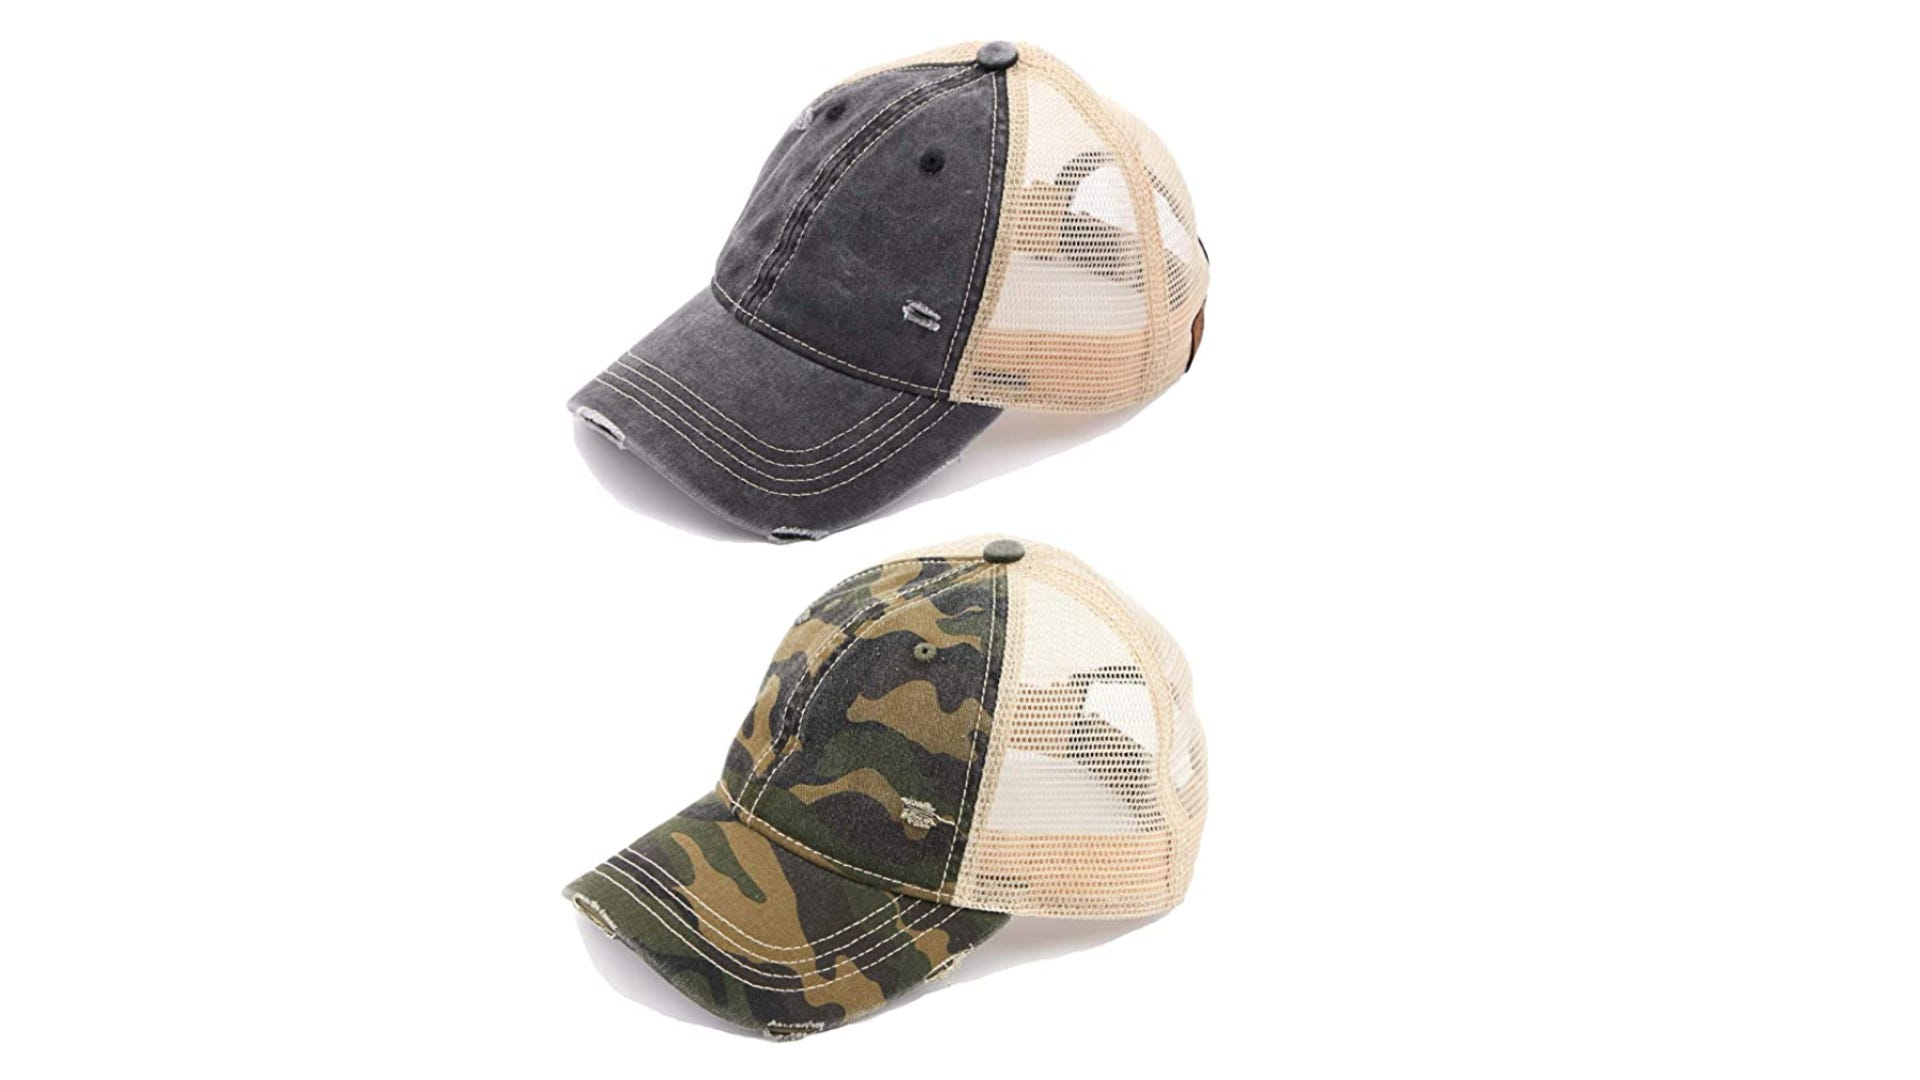 On top, a blue hat with a white mesh back. On the bottom, a camouflage hat with white mesh.